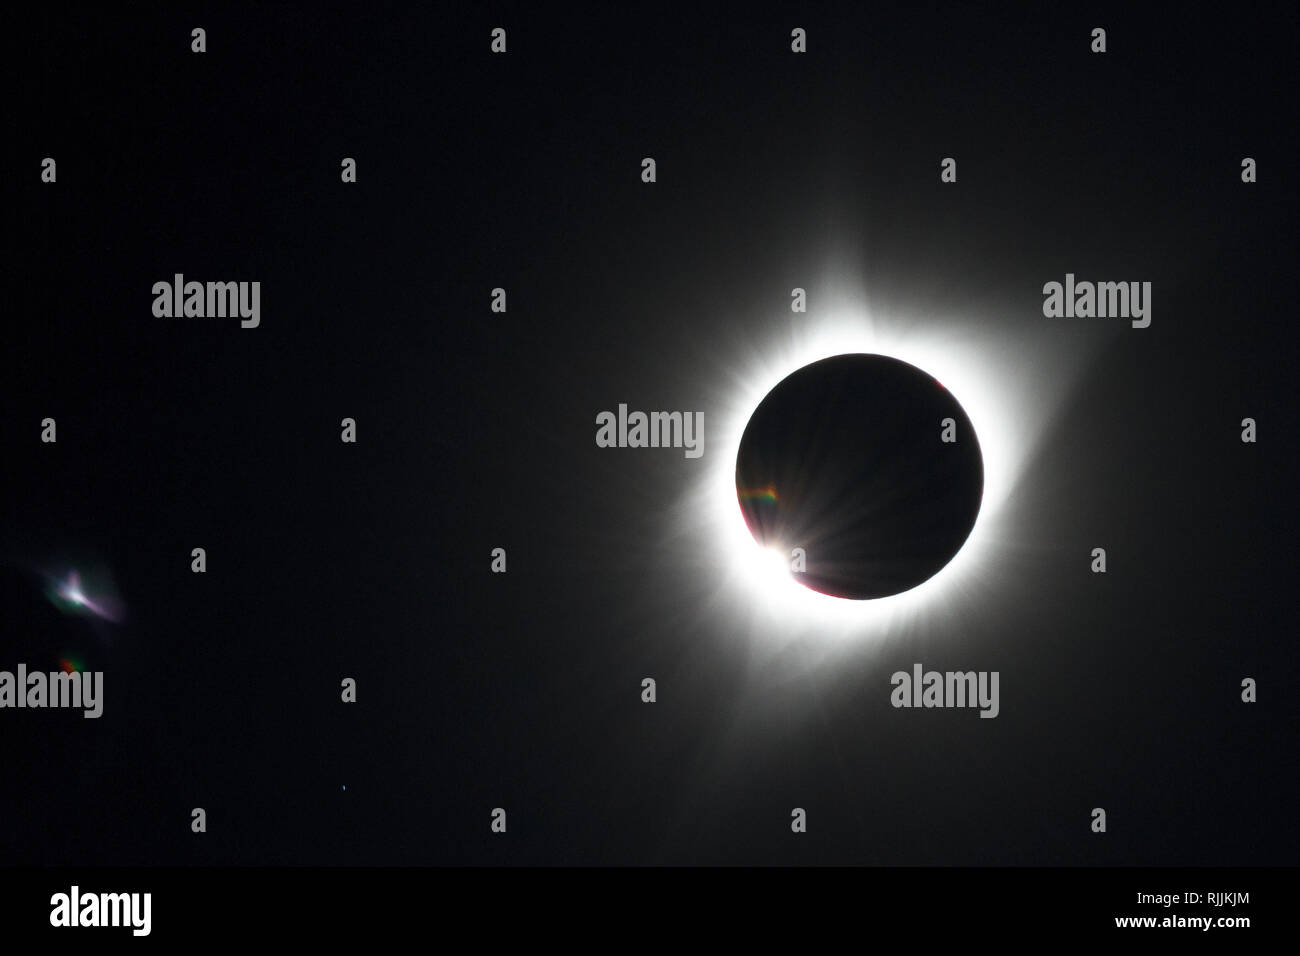 'Great American Eclipse' / The Solar Eclipse of August 21st, 2017 across the USA, with very last Sunlight shining through and creating a diamond ring - Stock Image